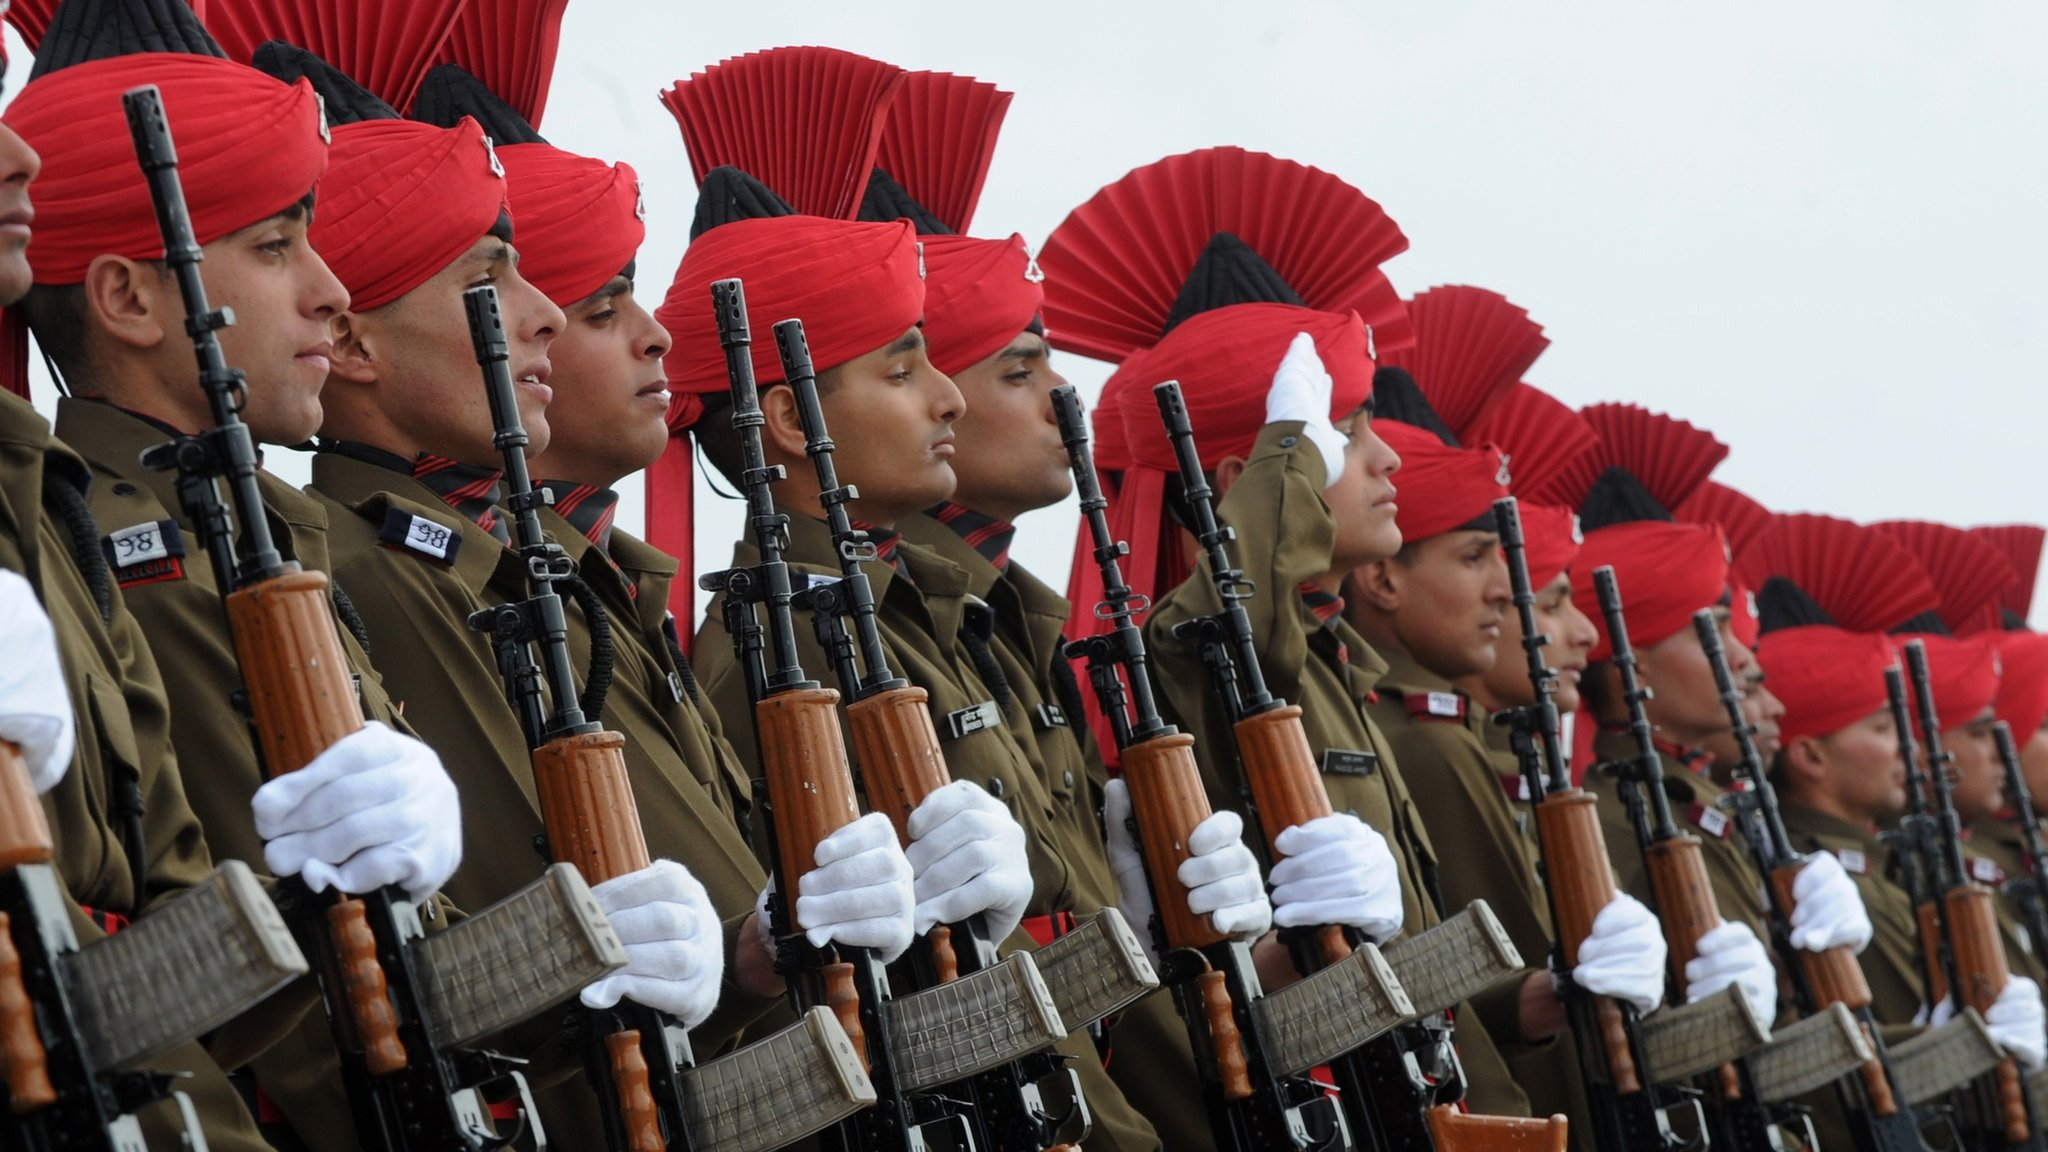 Indian army cancels recruitment exams after 'leak'